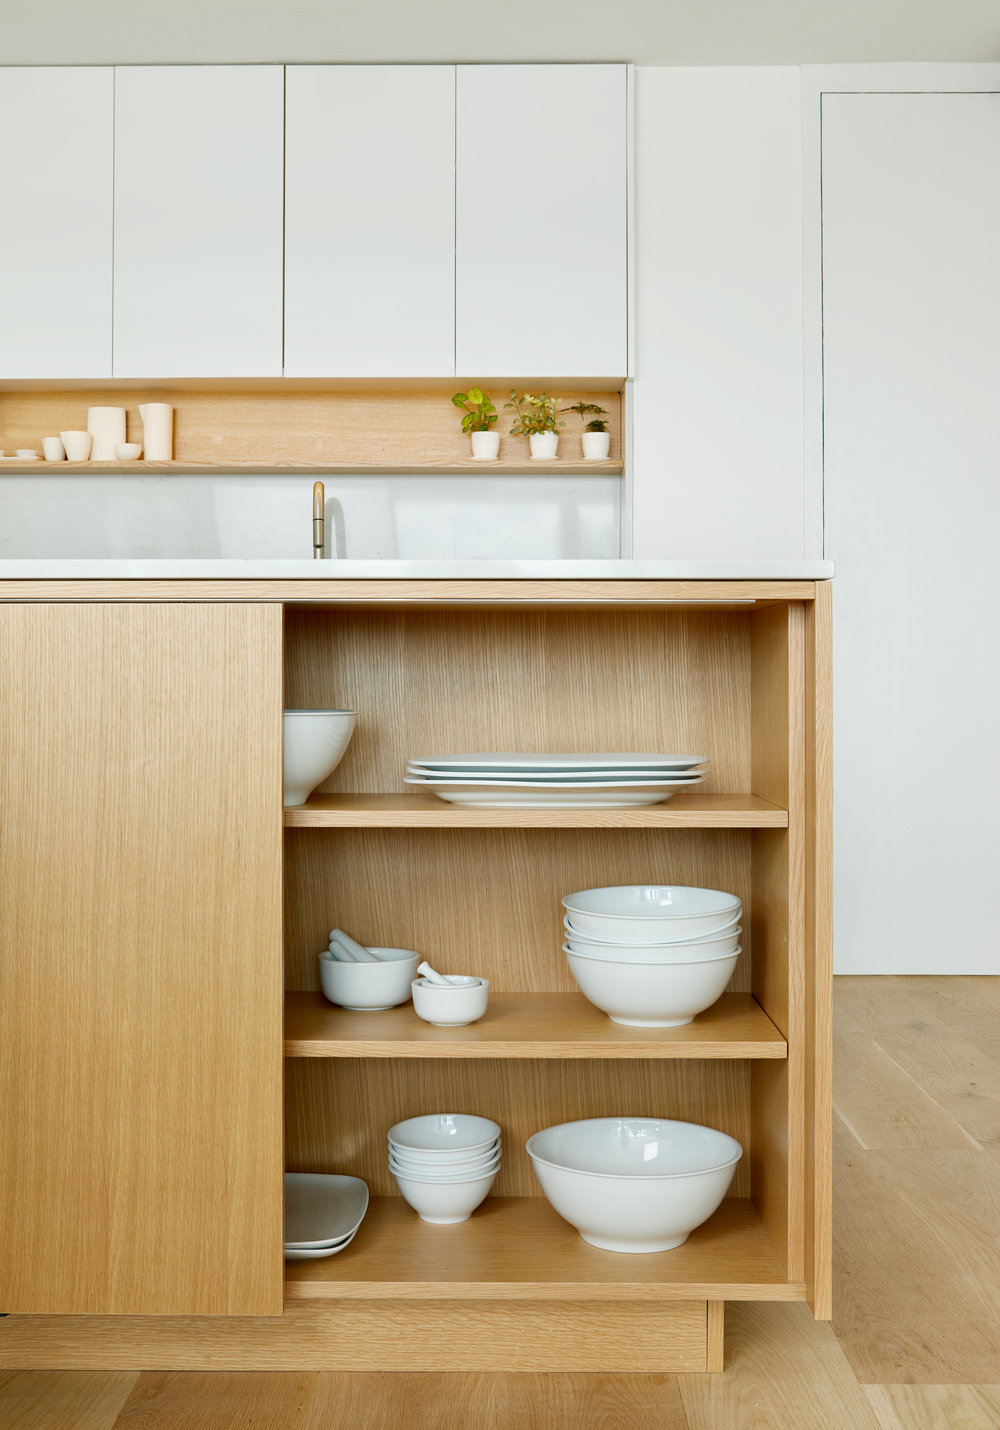 White and Oak Kitchen Storage - Apartment Renovation, Chicago